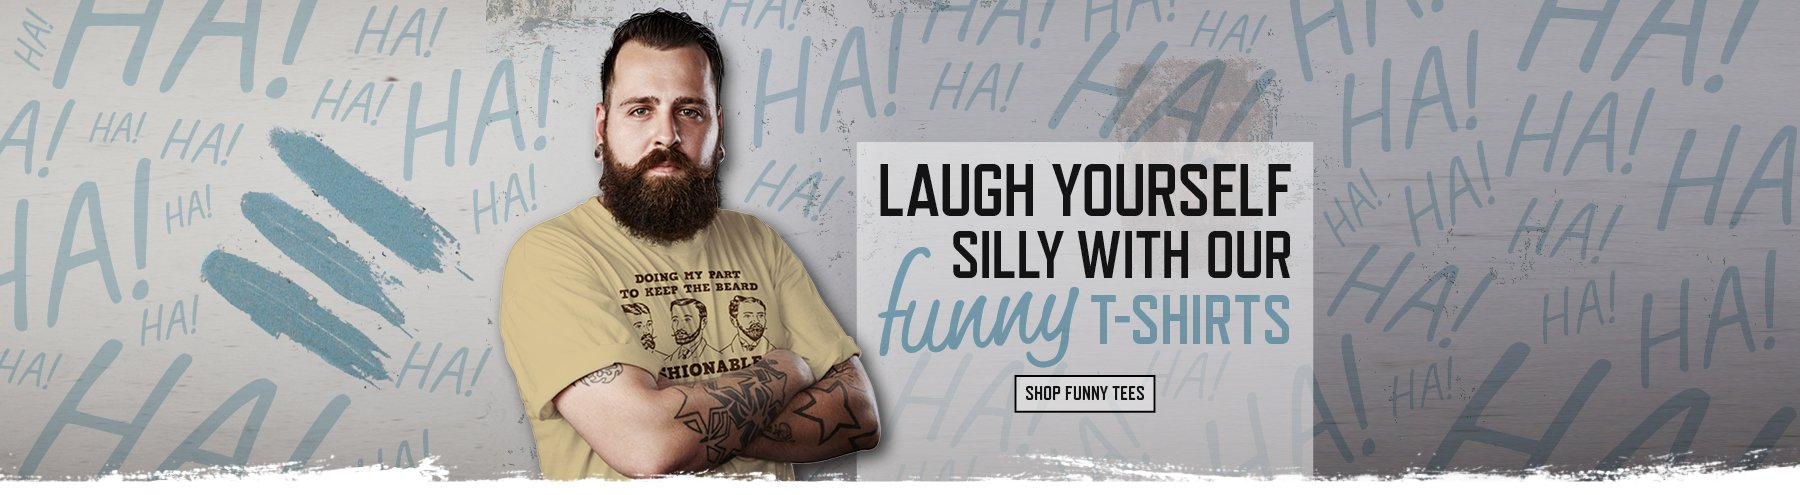 Funny T-Shirts - Have a laugh on us!